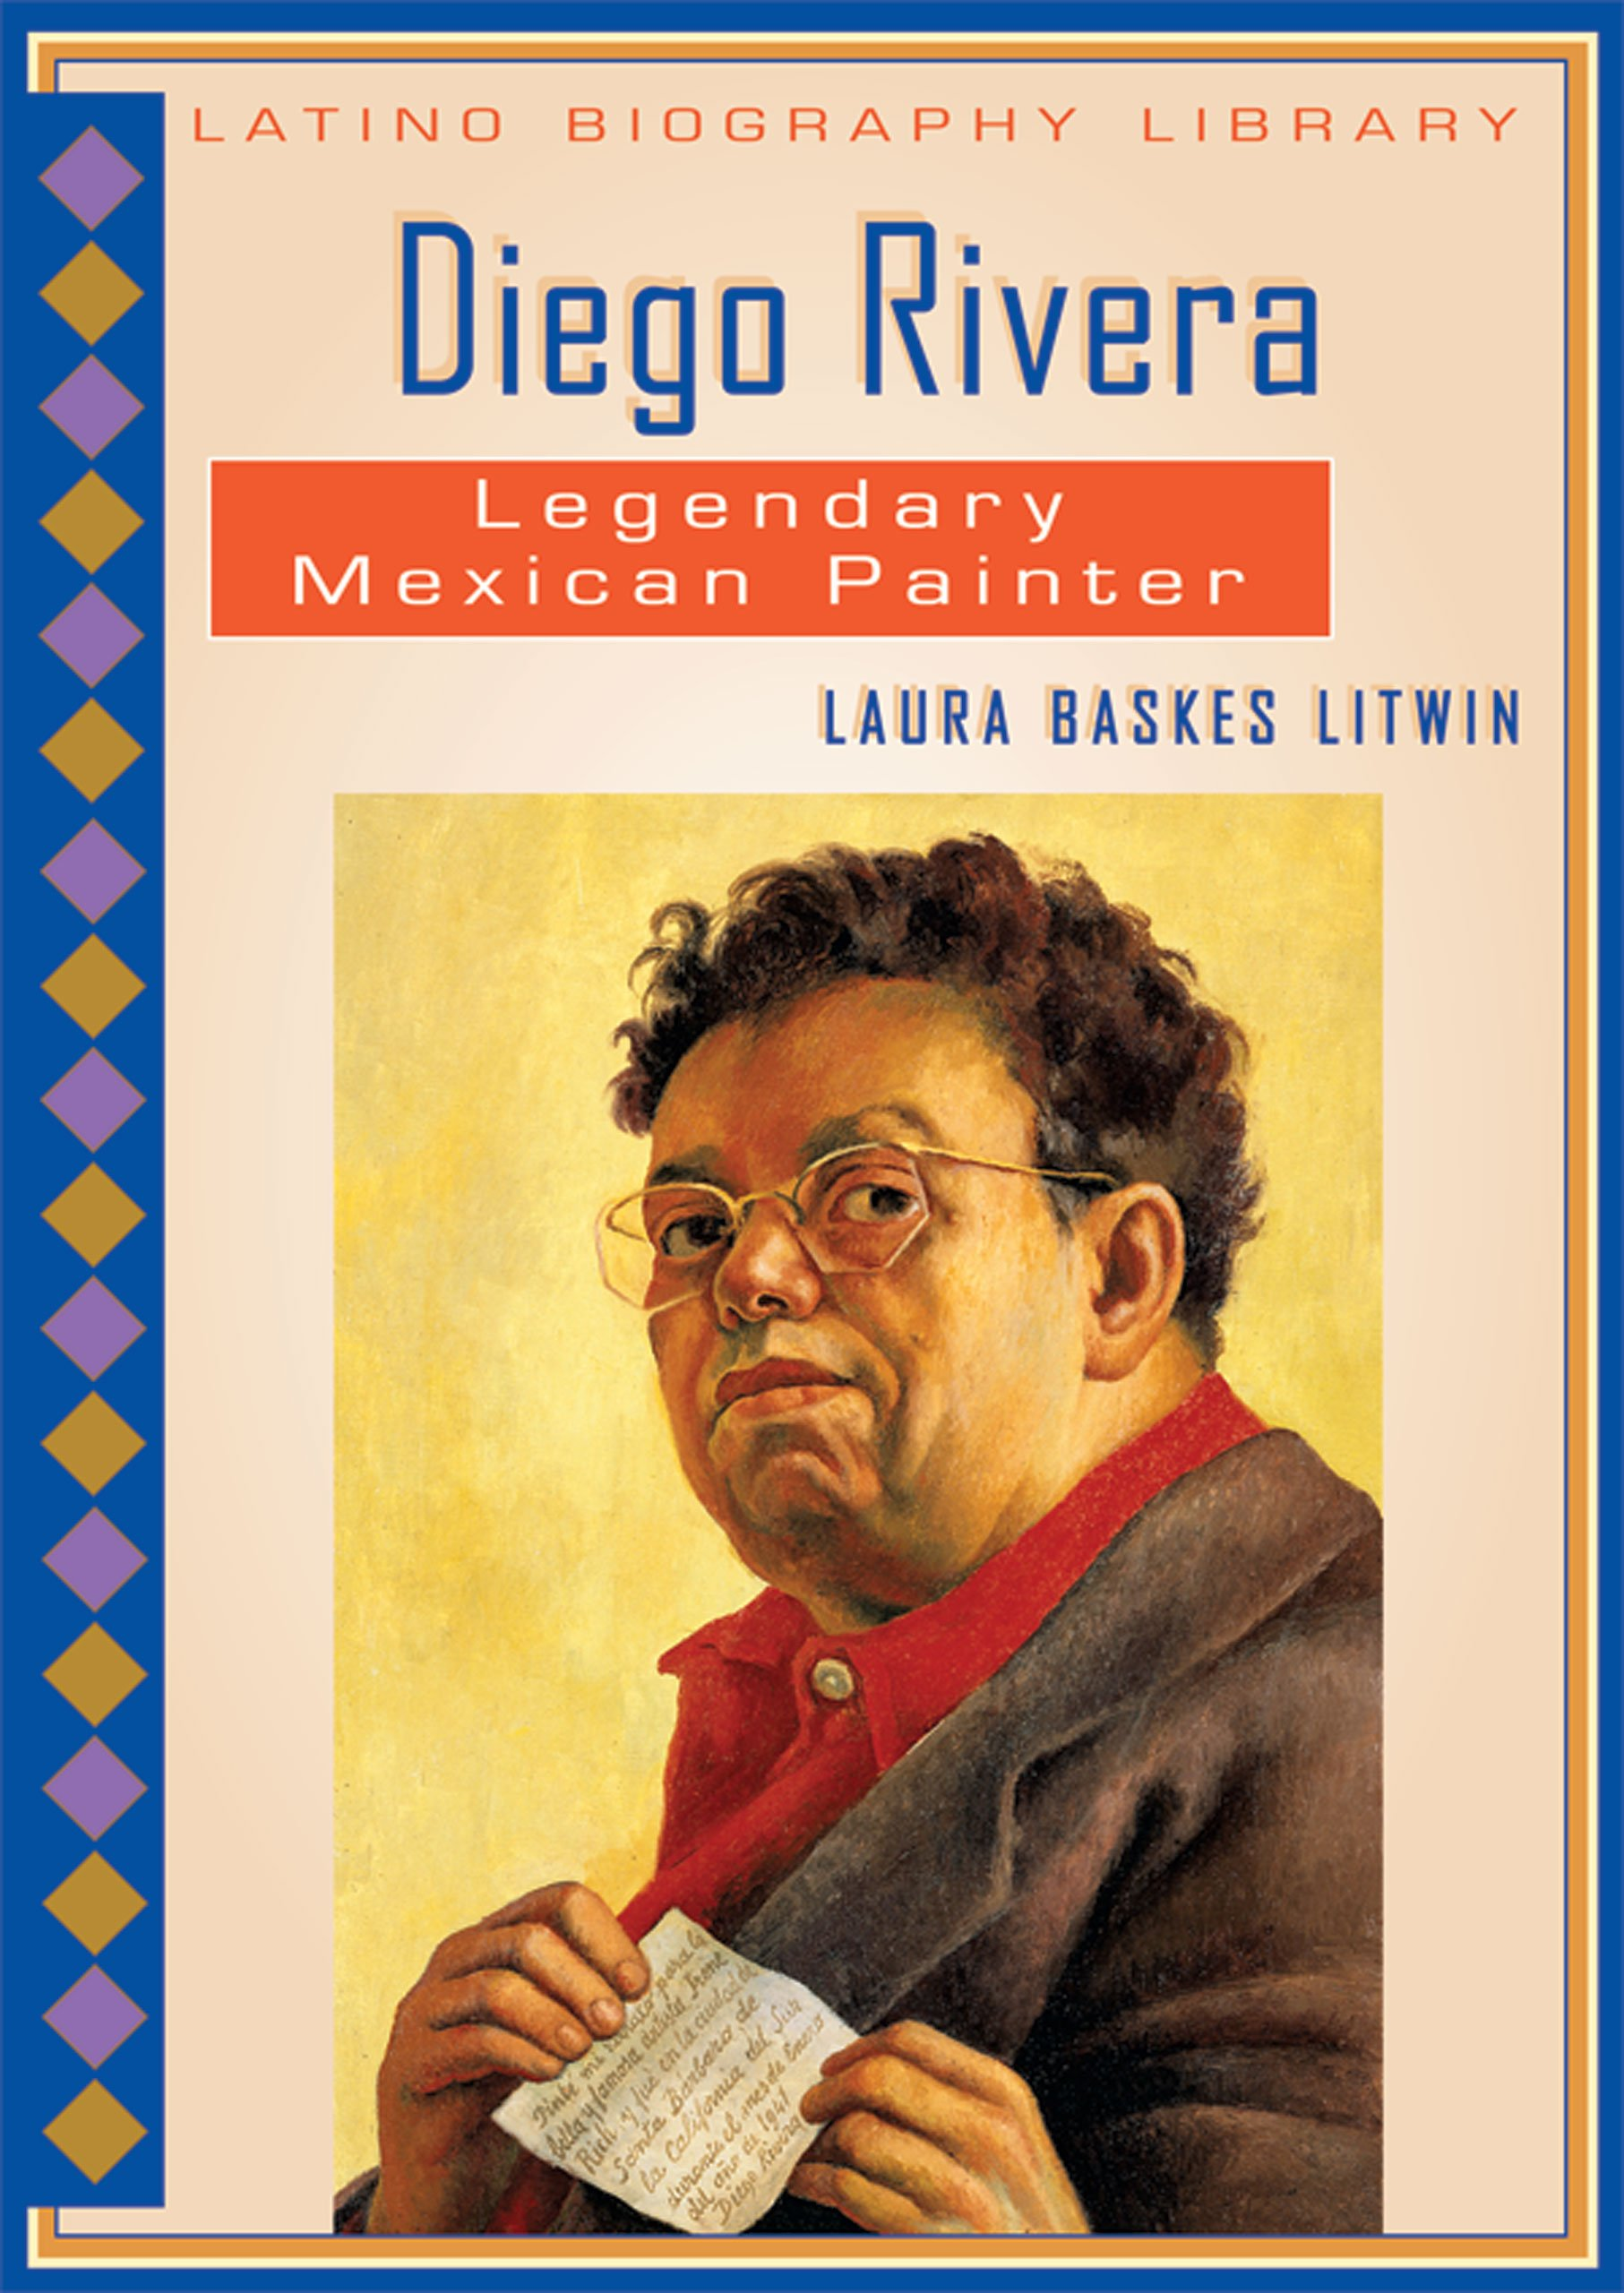 Diego Rivera: Legendary Mexican Painter (Latino Biography Library) pdf